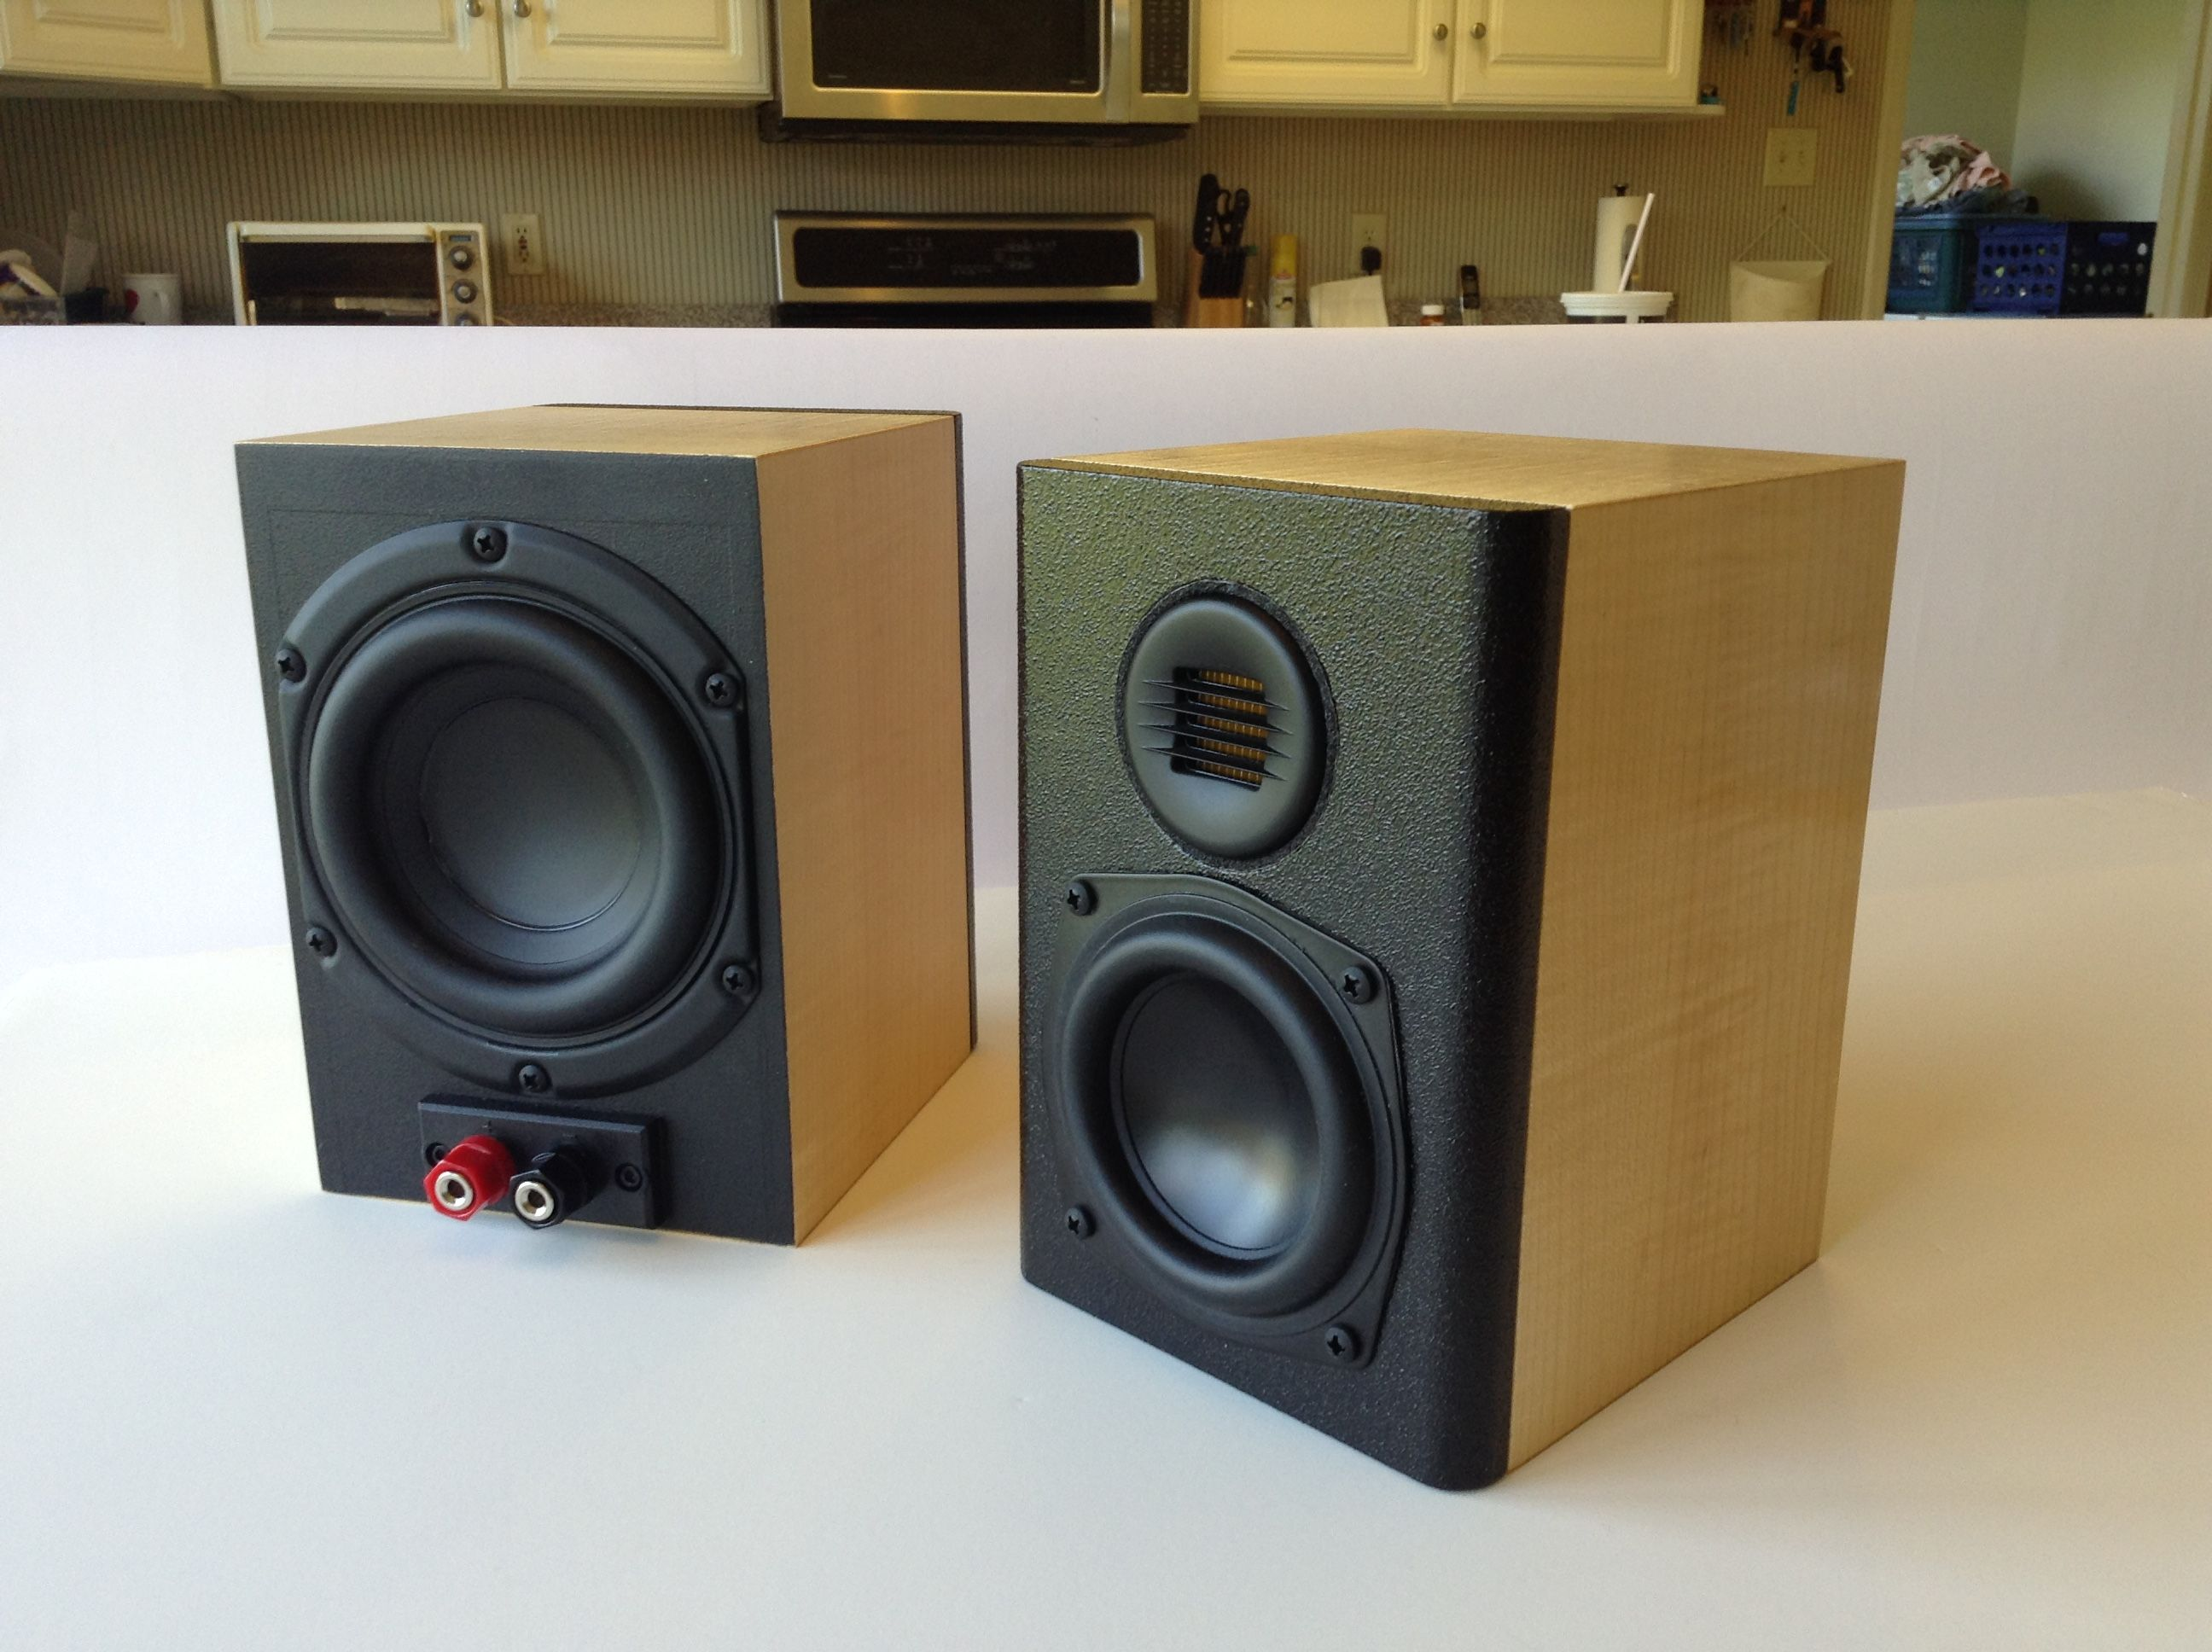 Design Your Own Kit Home Perth Slim Bookshelf Speakers 28 Images Elac Uni Fi Bs U5